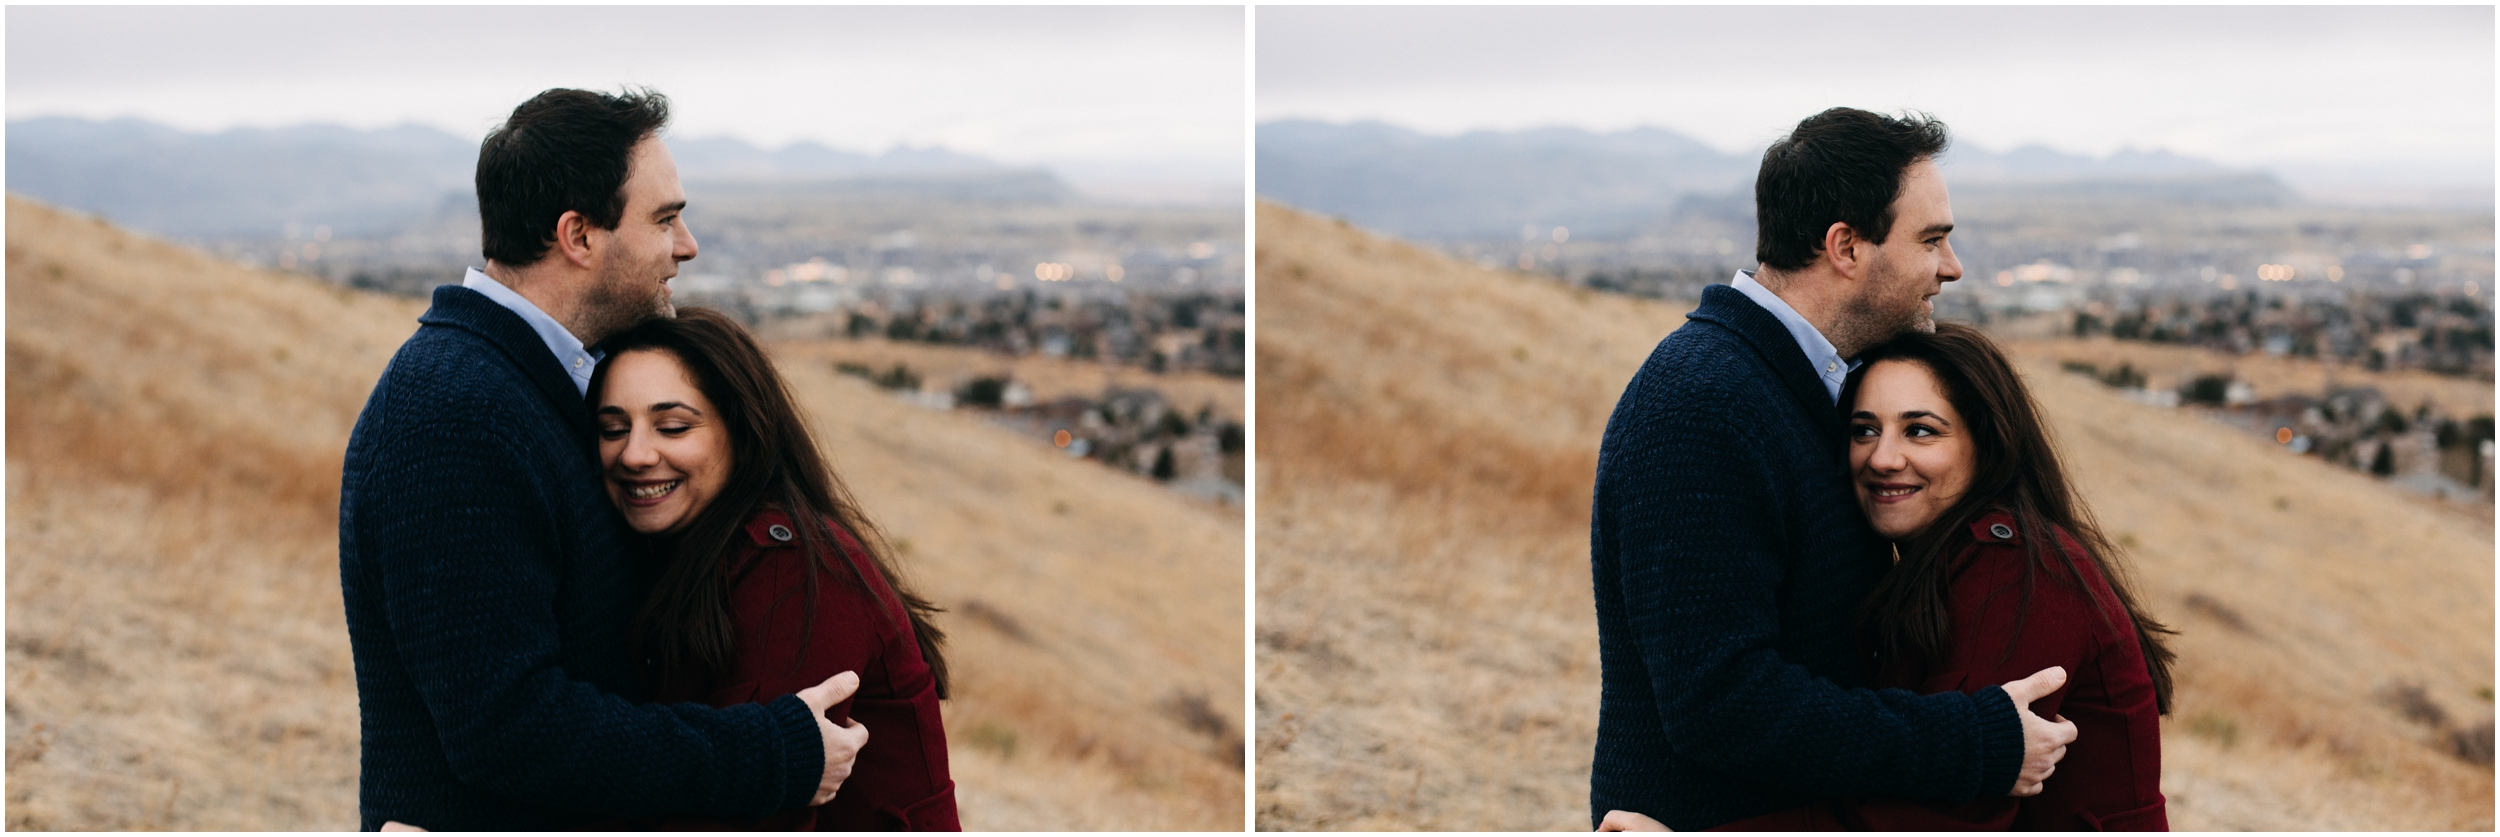 moody mountain engagement session-denver wedding photographer-colorado_0050.jpg